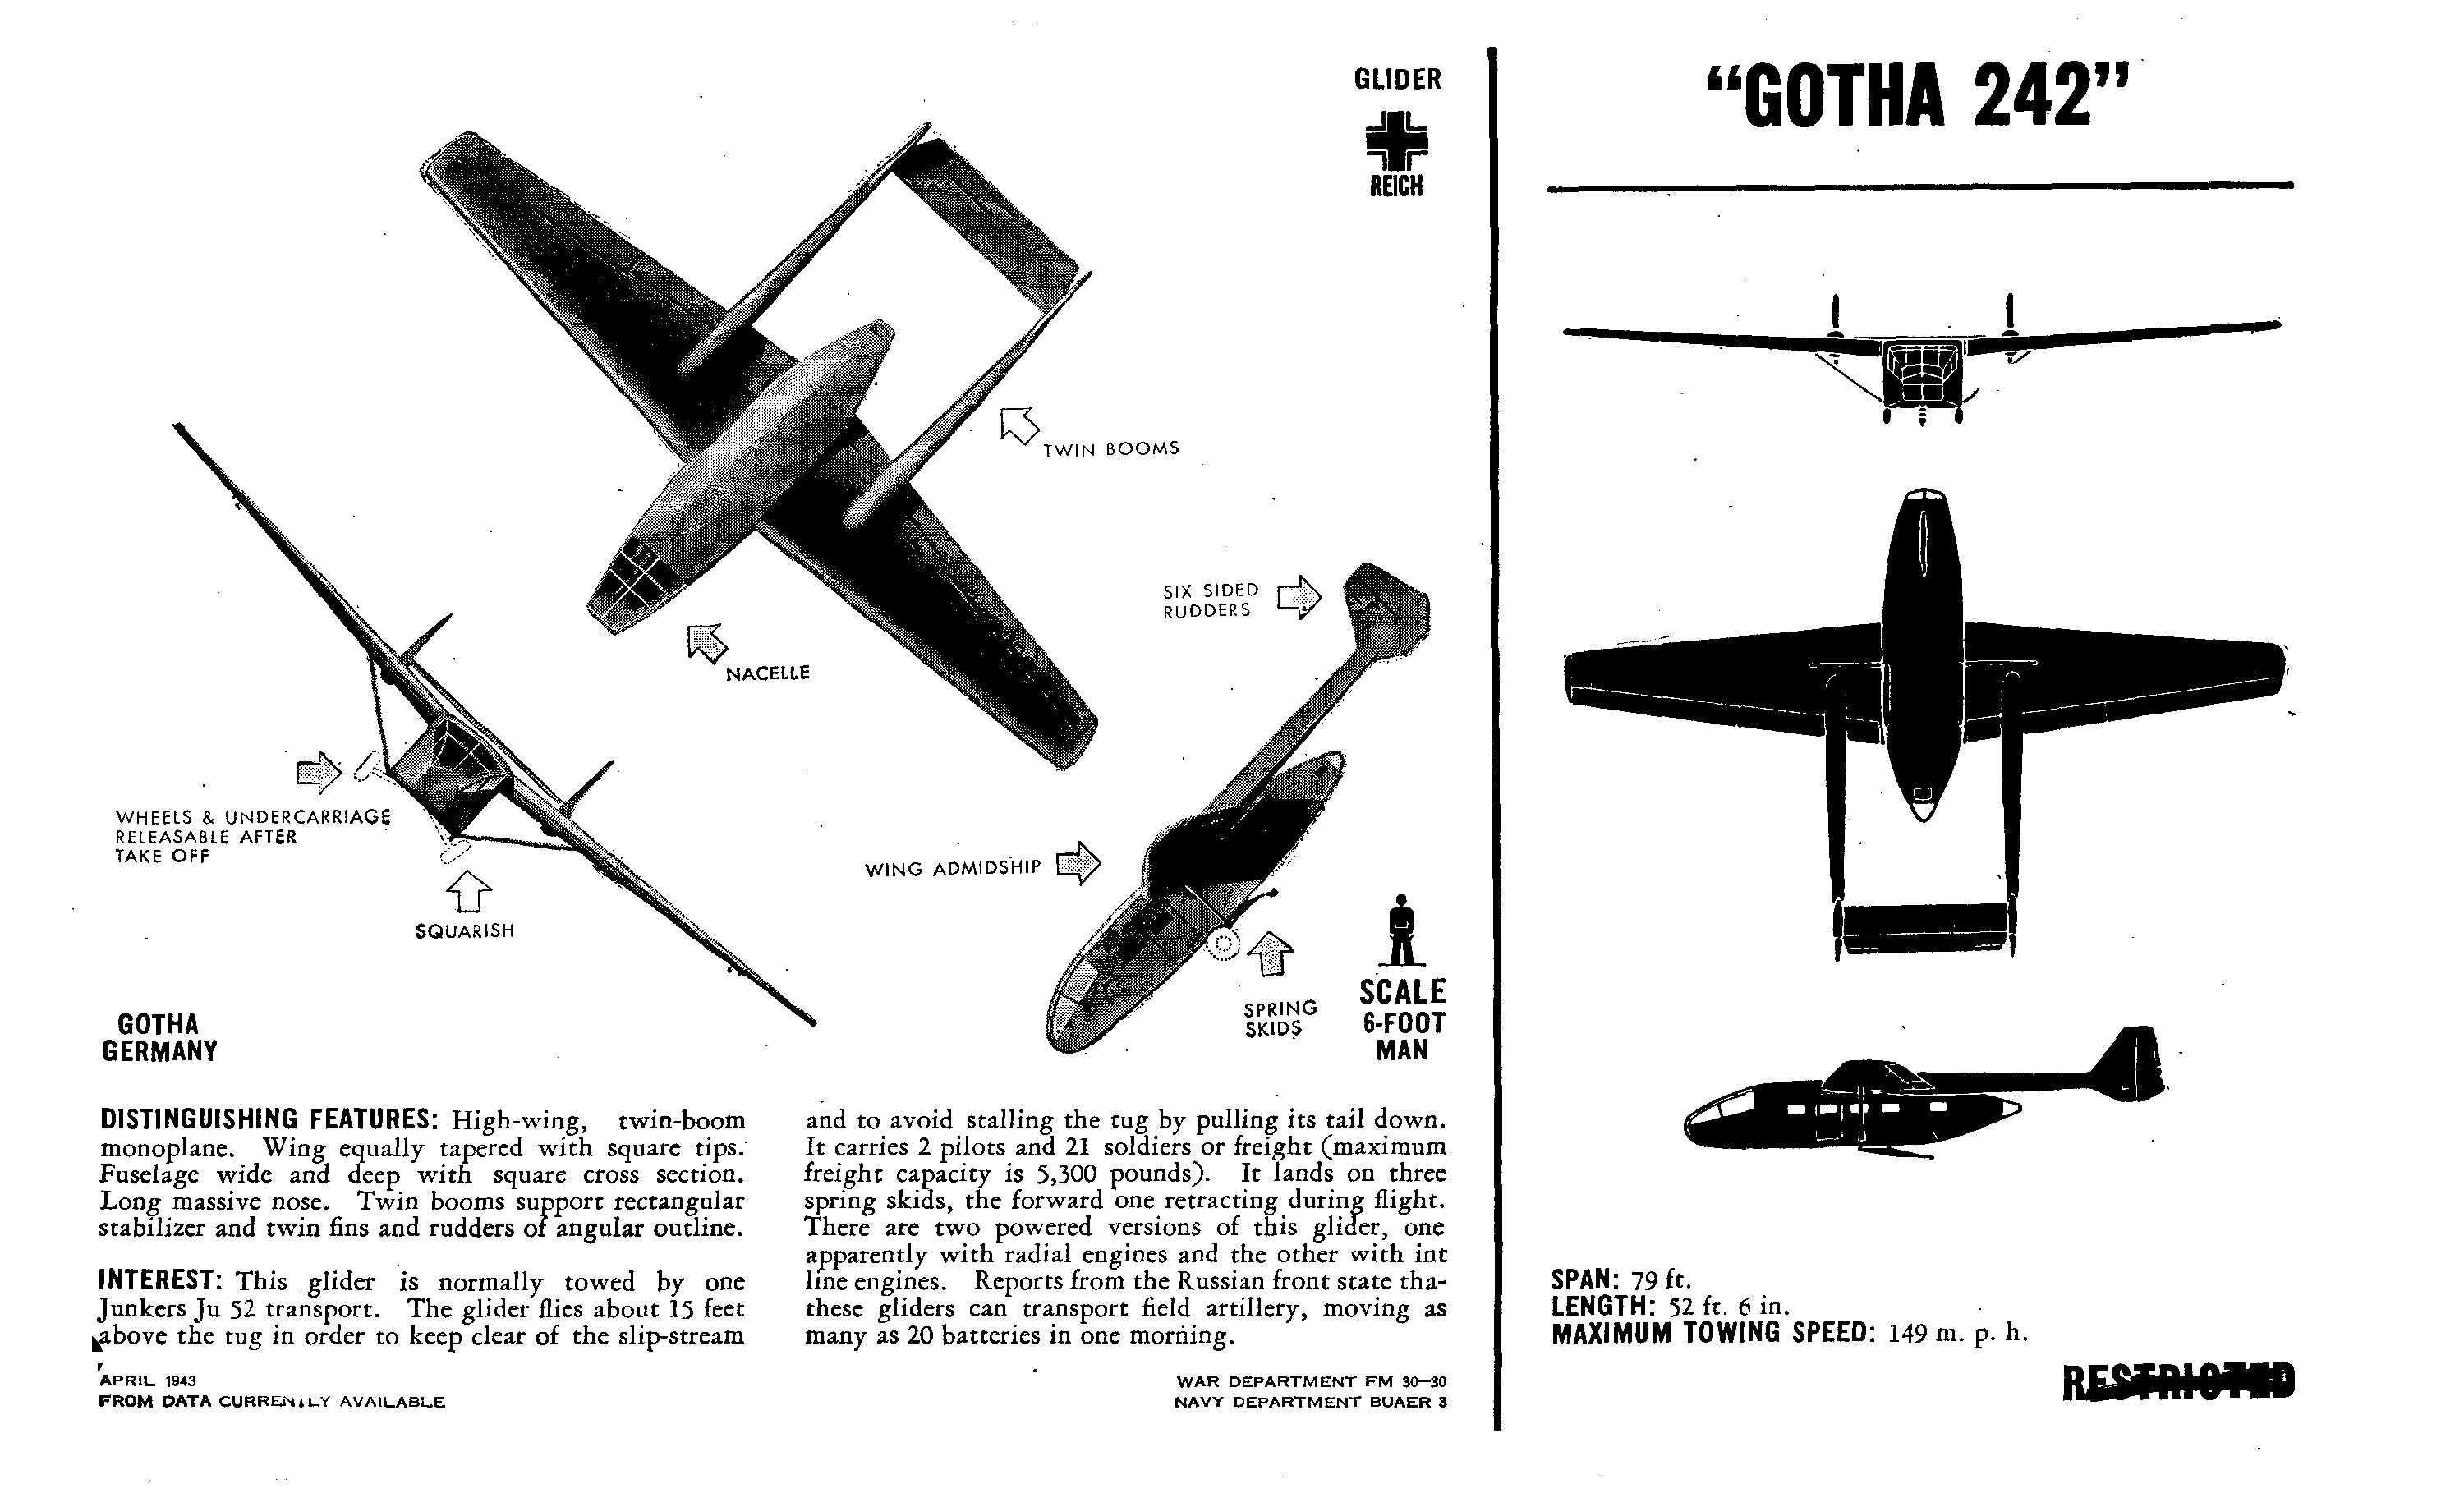 Enemy Or Foe Wwii U S Aircraft Recognition Slides And Manuals By Matthew Peek Nc Stories Of Service Medium